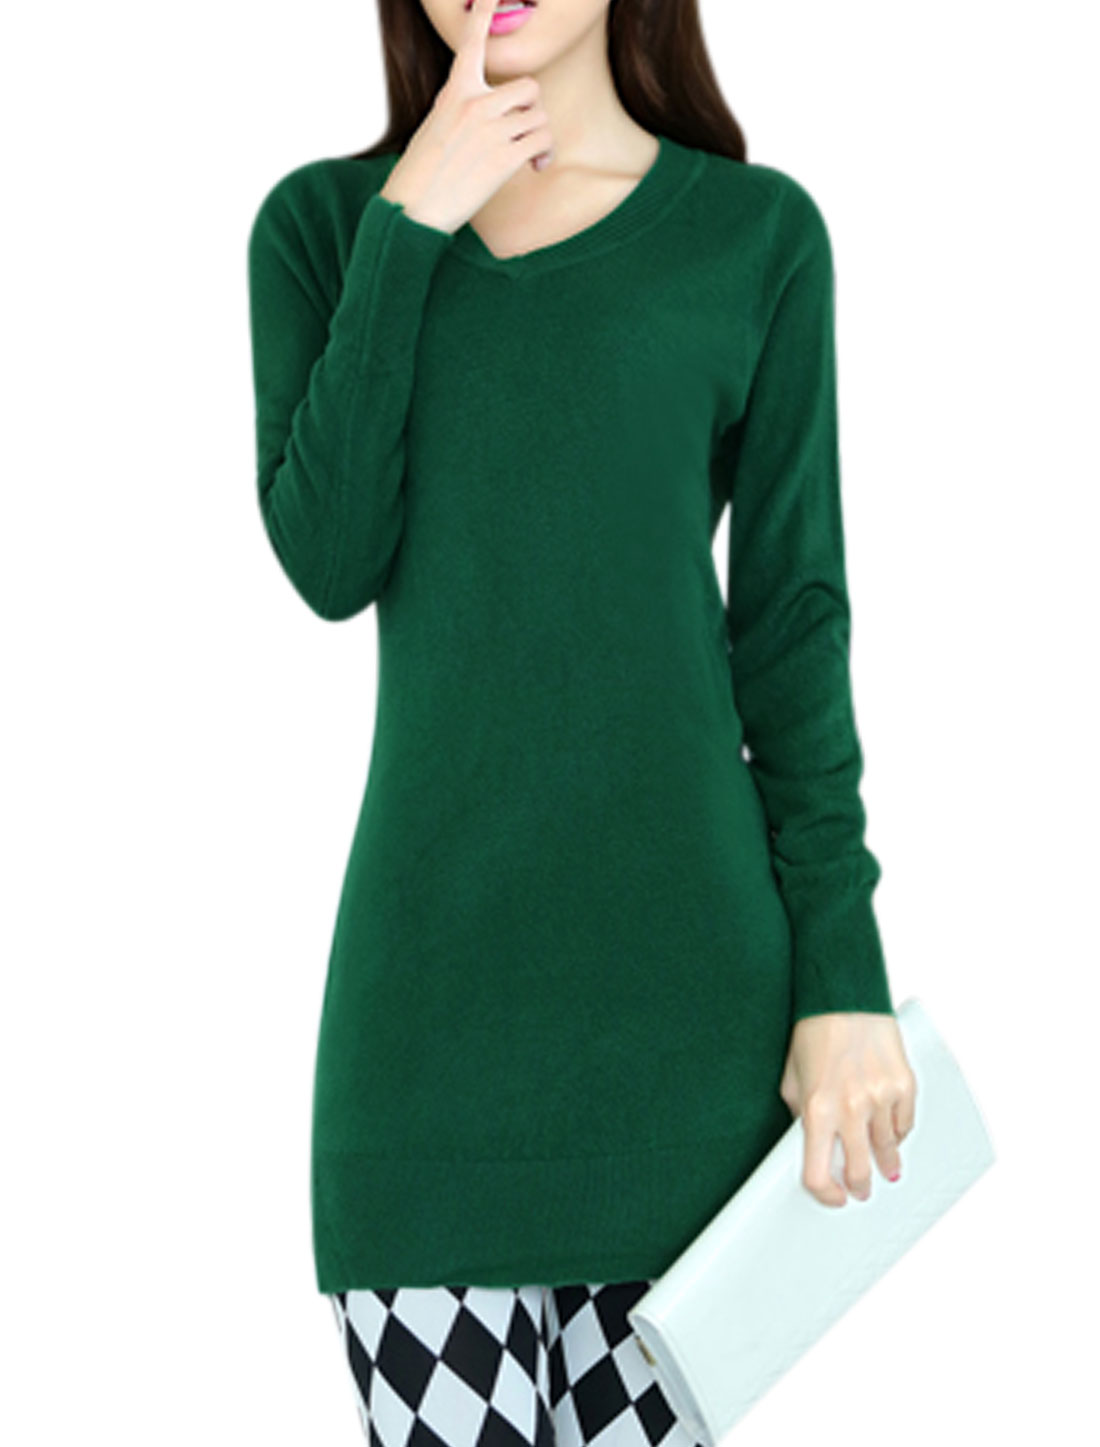 Long Sleeves Pullover Casual Dusty Green Tunic Knit Shirt for Woman XS